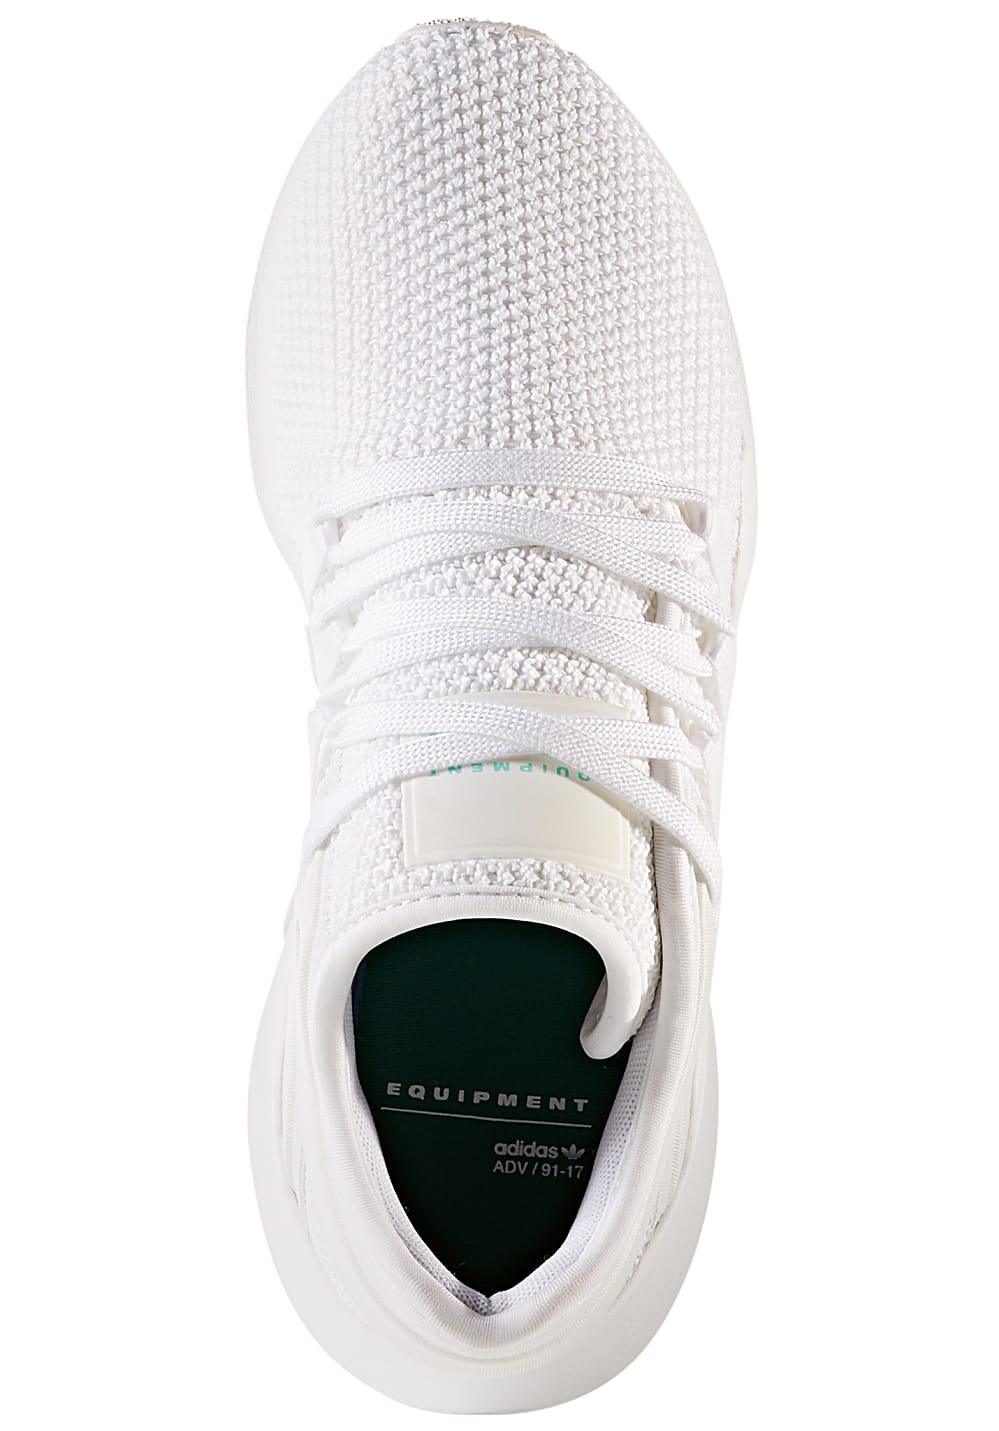 buy online eafe5 0bb7b ADIDAS ORIGINALS Eqt Racing Adv - Sneakers for Women - White